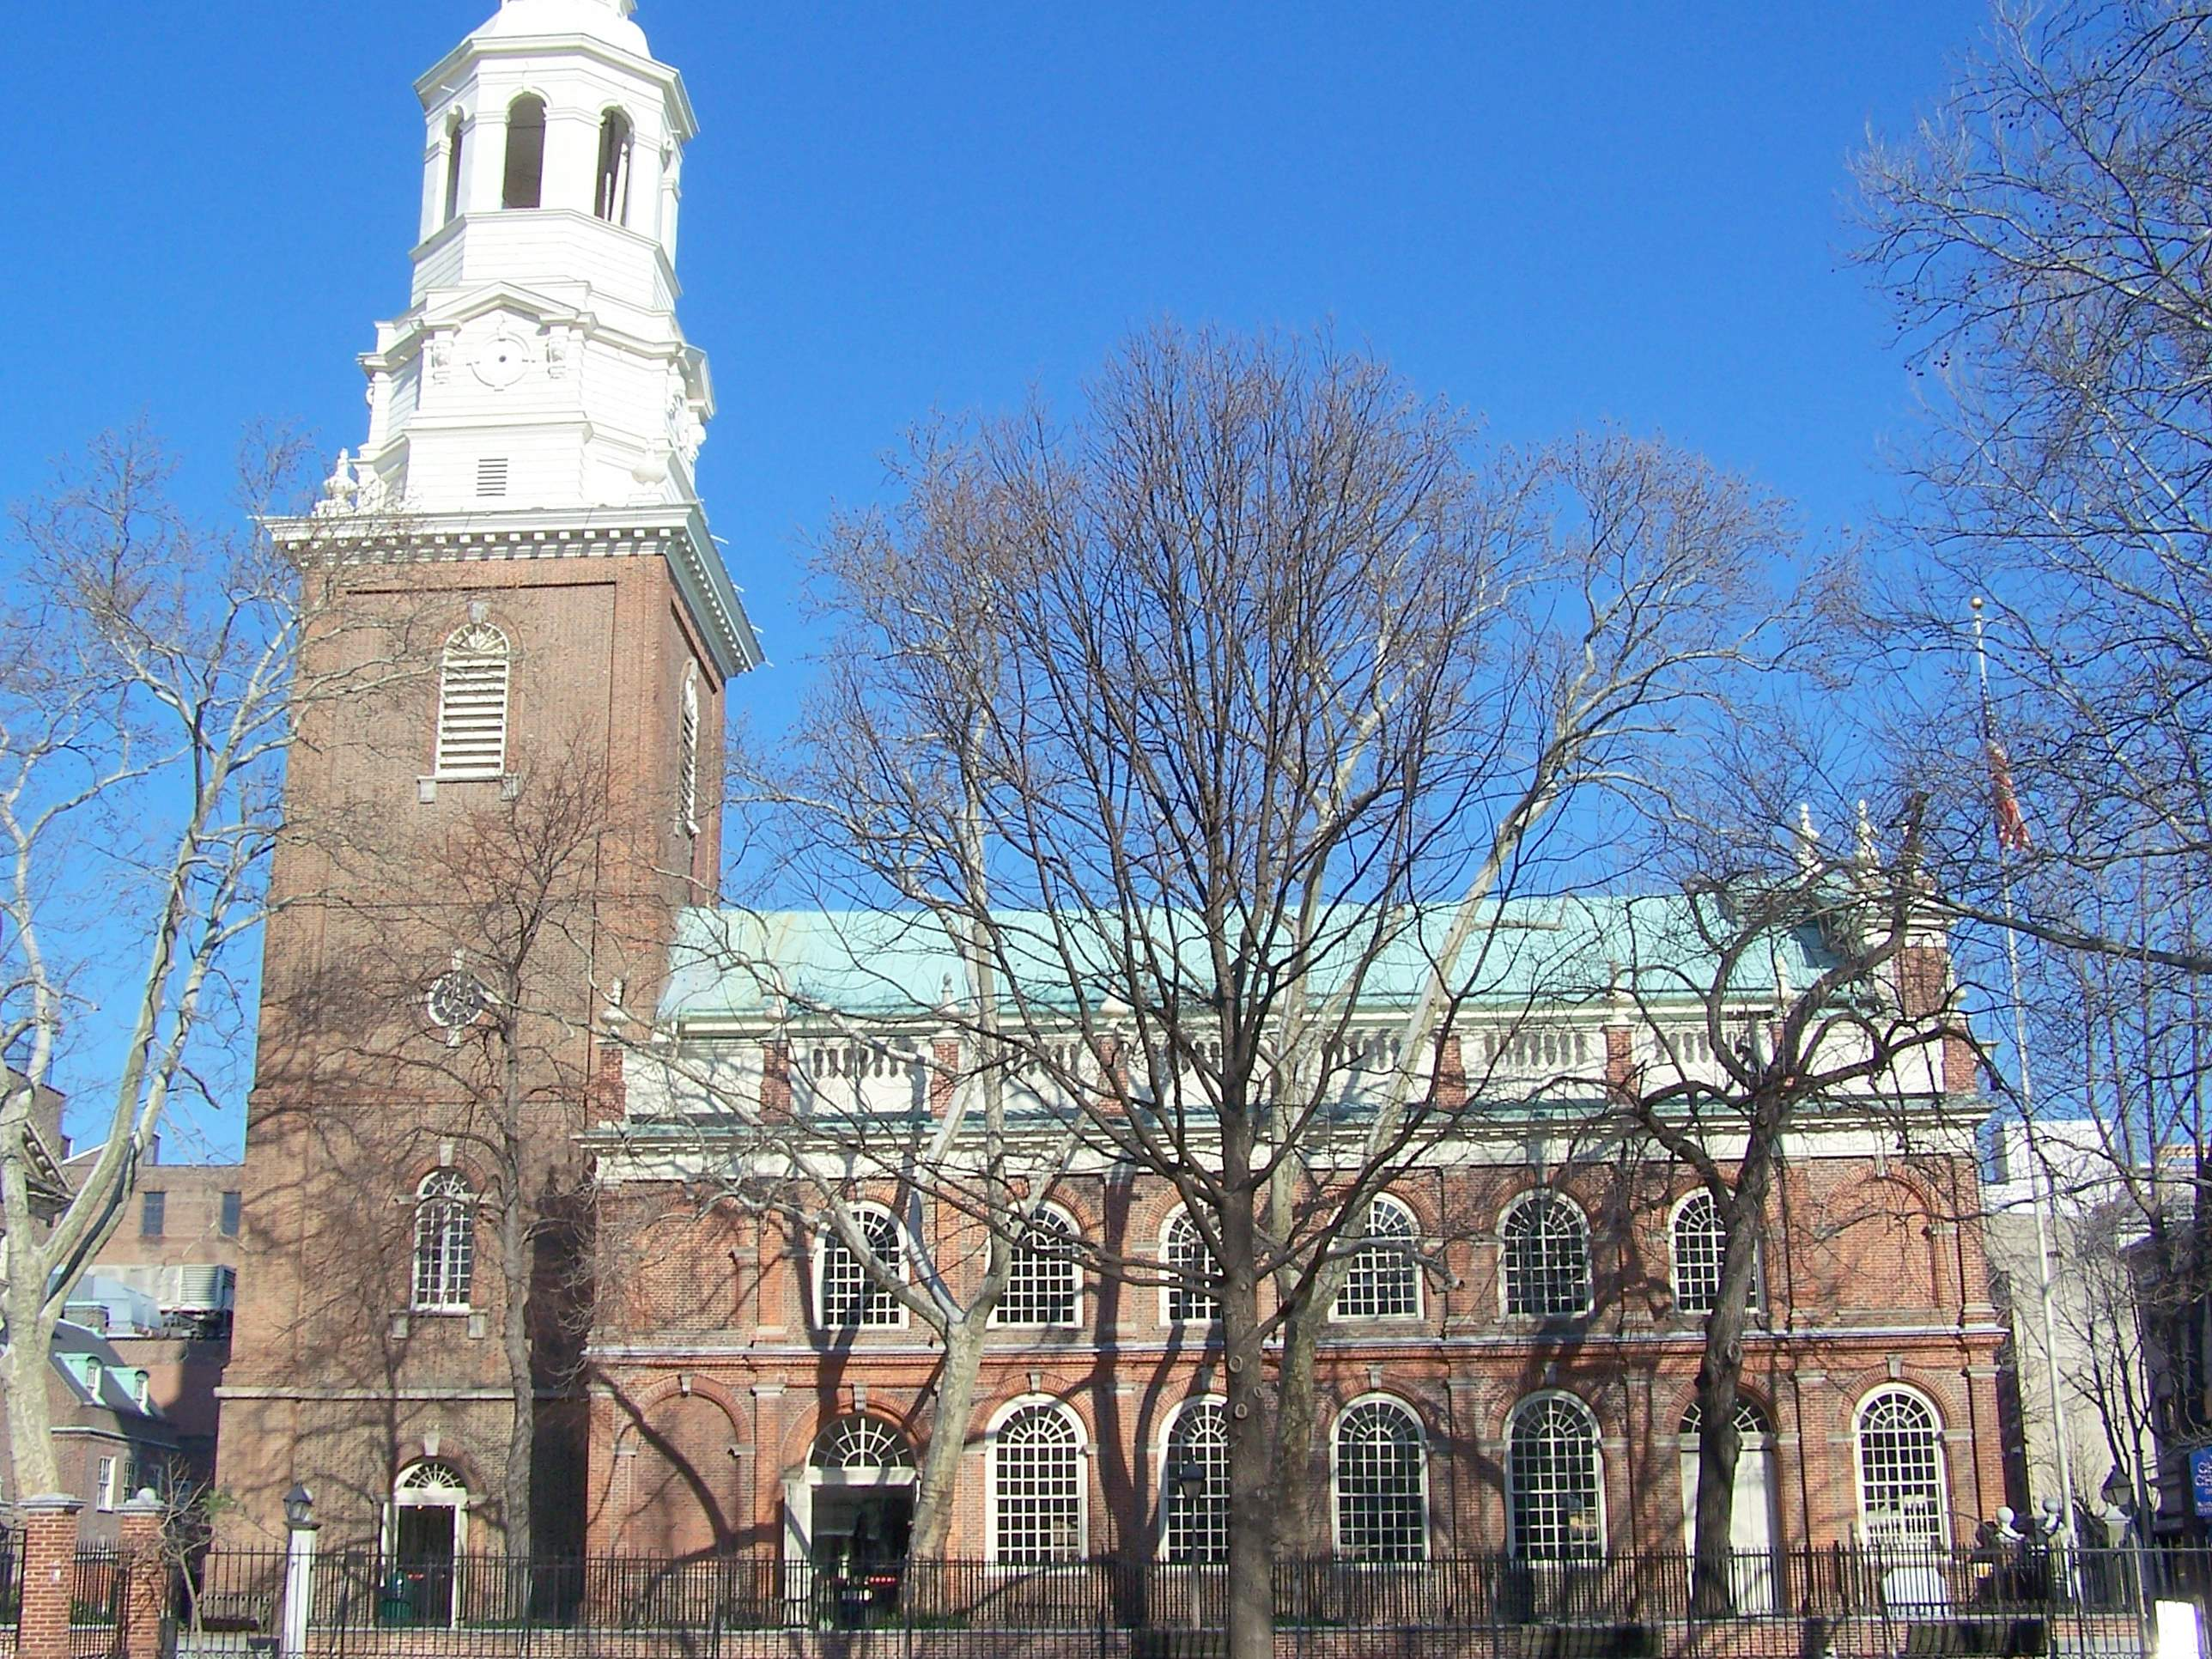 Christ Church Picture: CHURCHES OF THE FOUNDING FATHERS